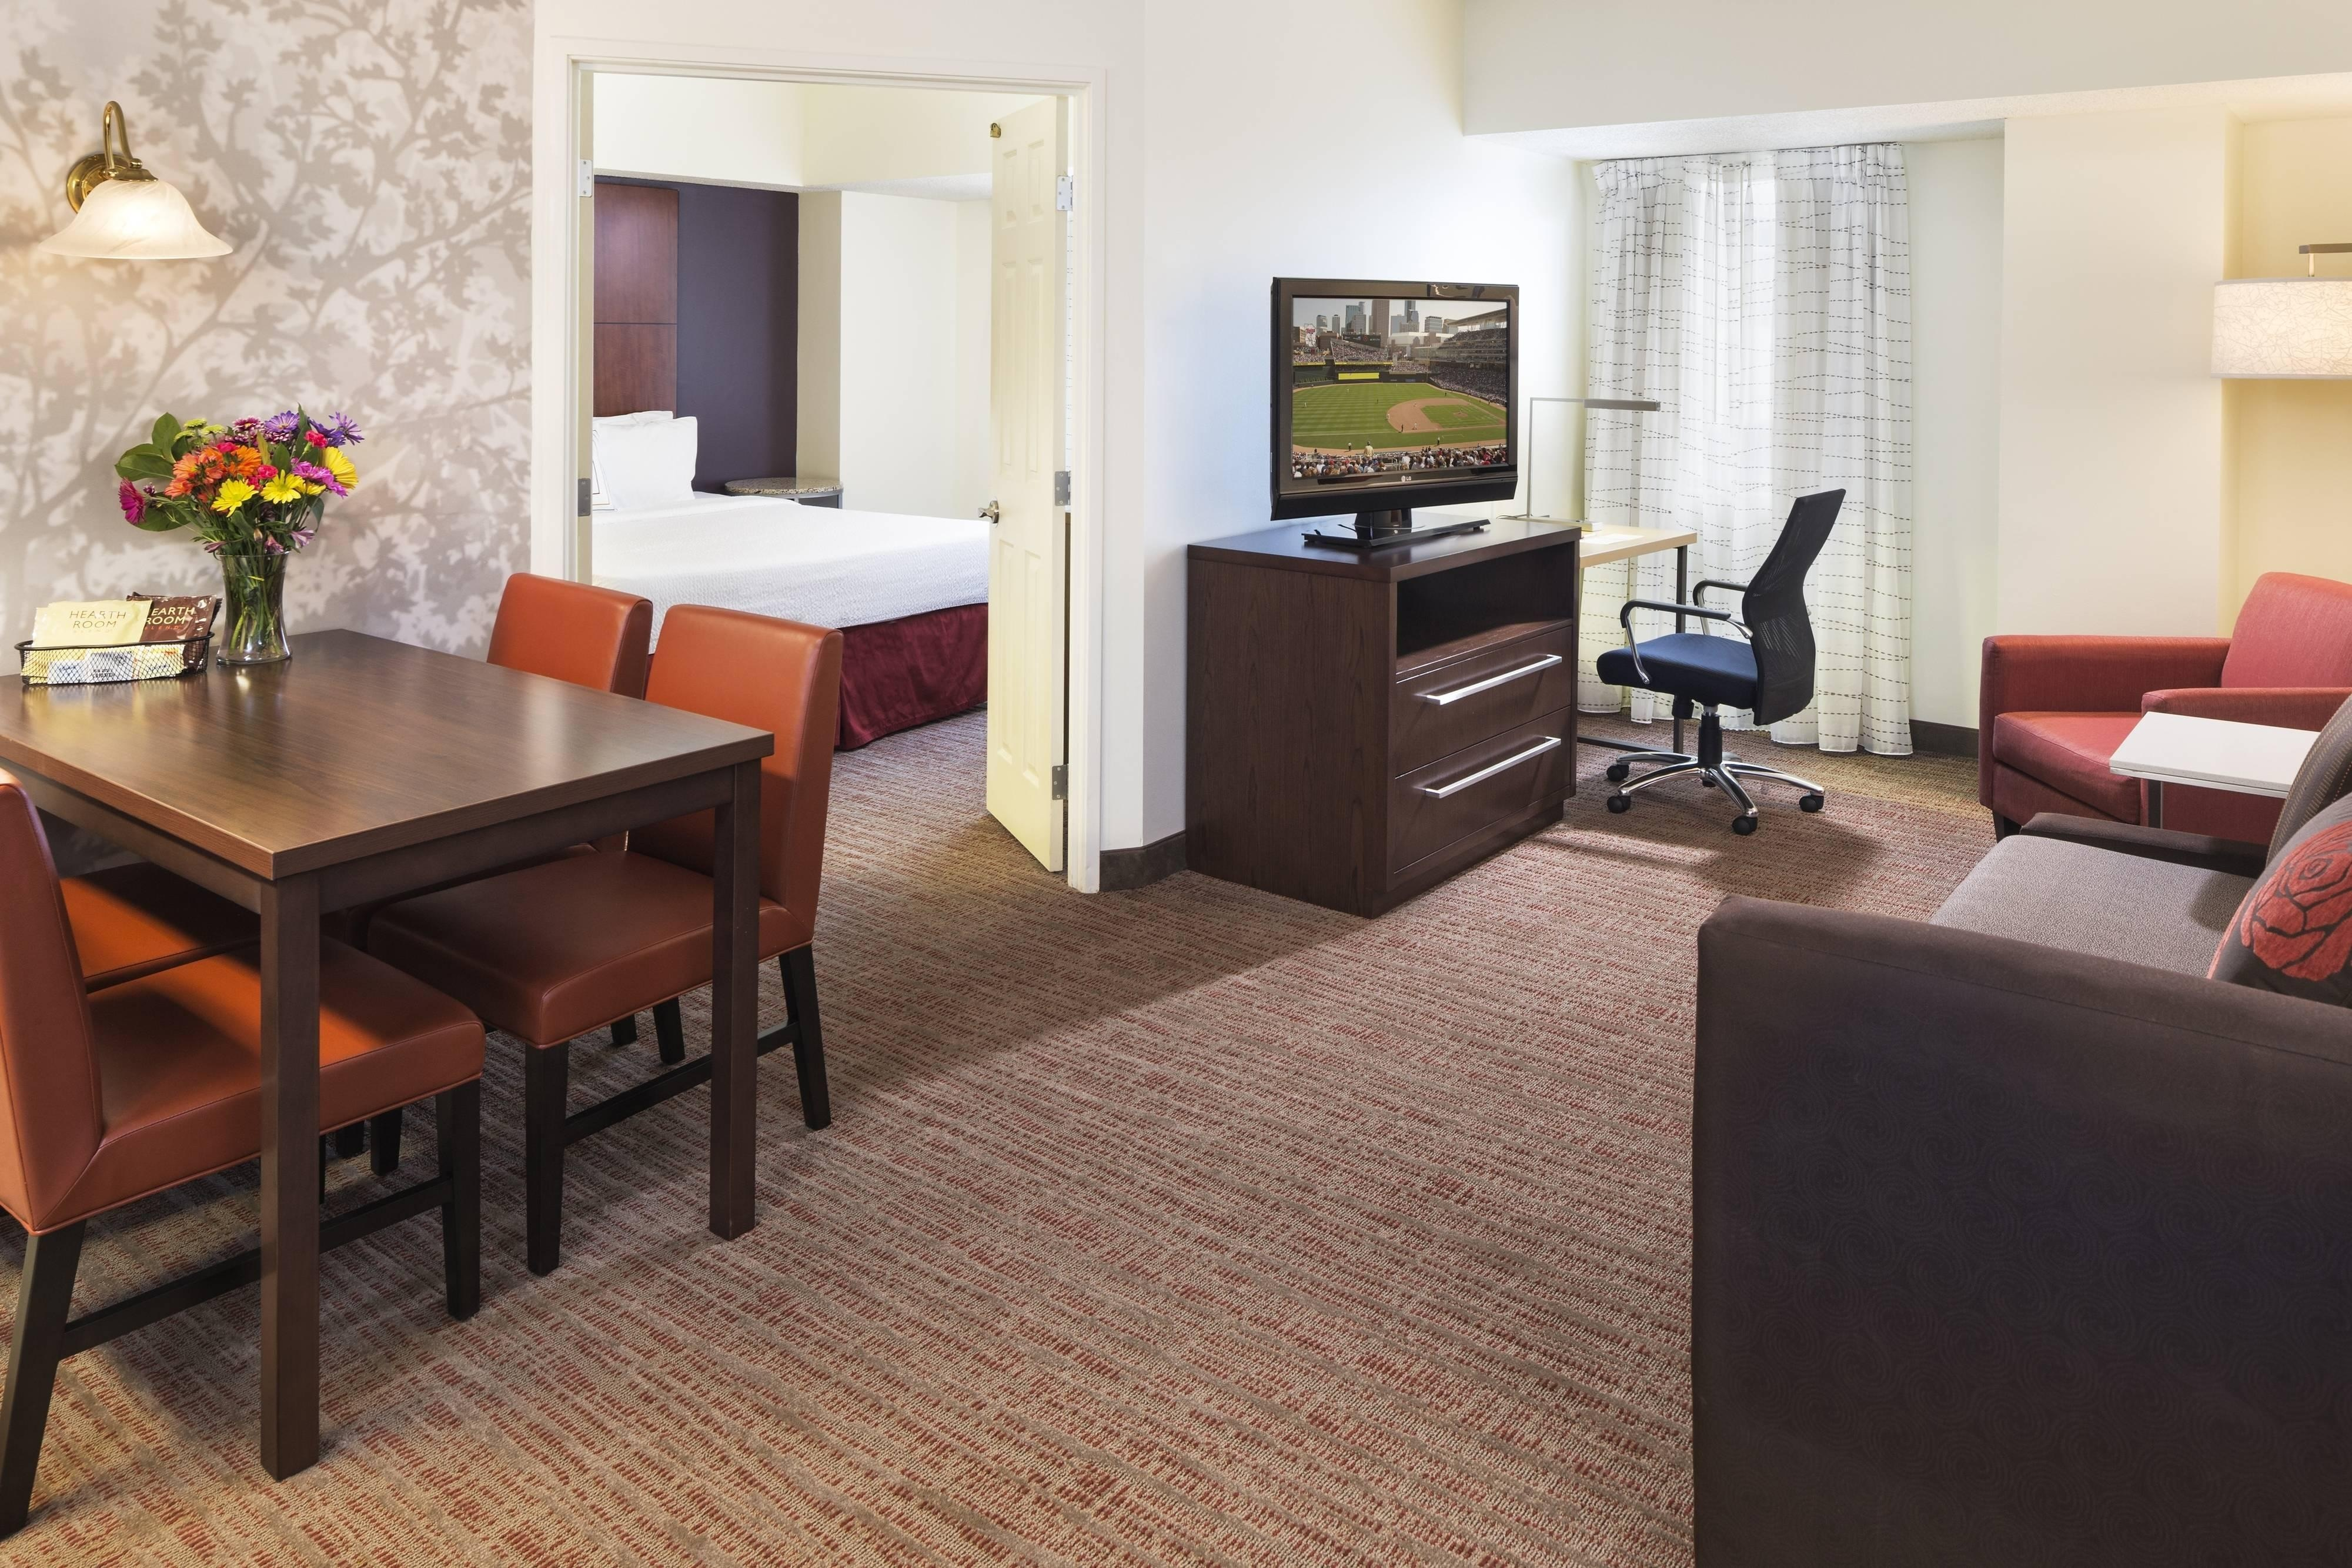 Minneapolis Extended Stay Apartment Style Guest Rooms And Suites In Downtown Minneapolis Mn